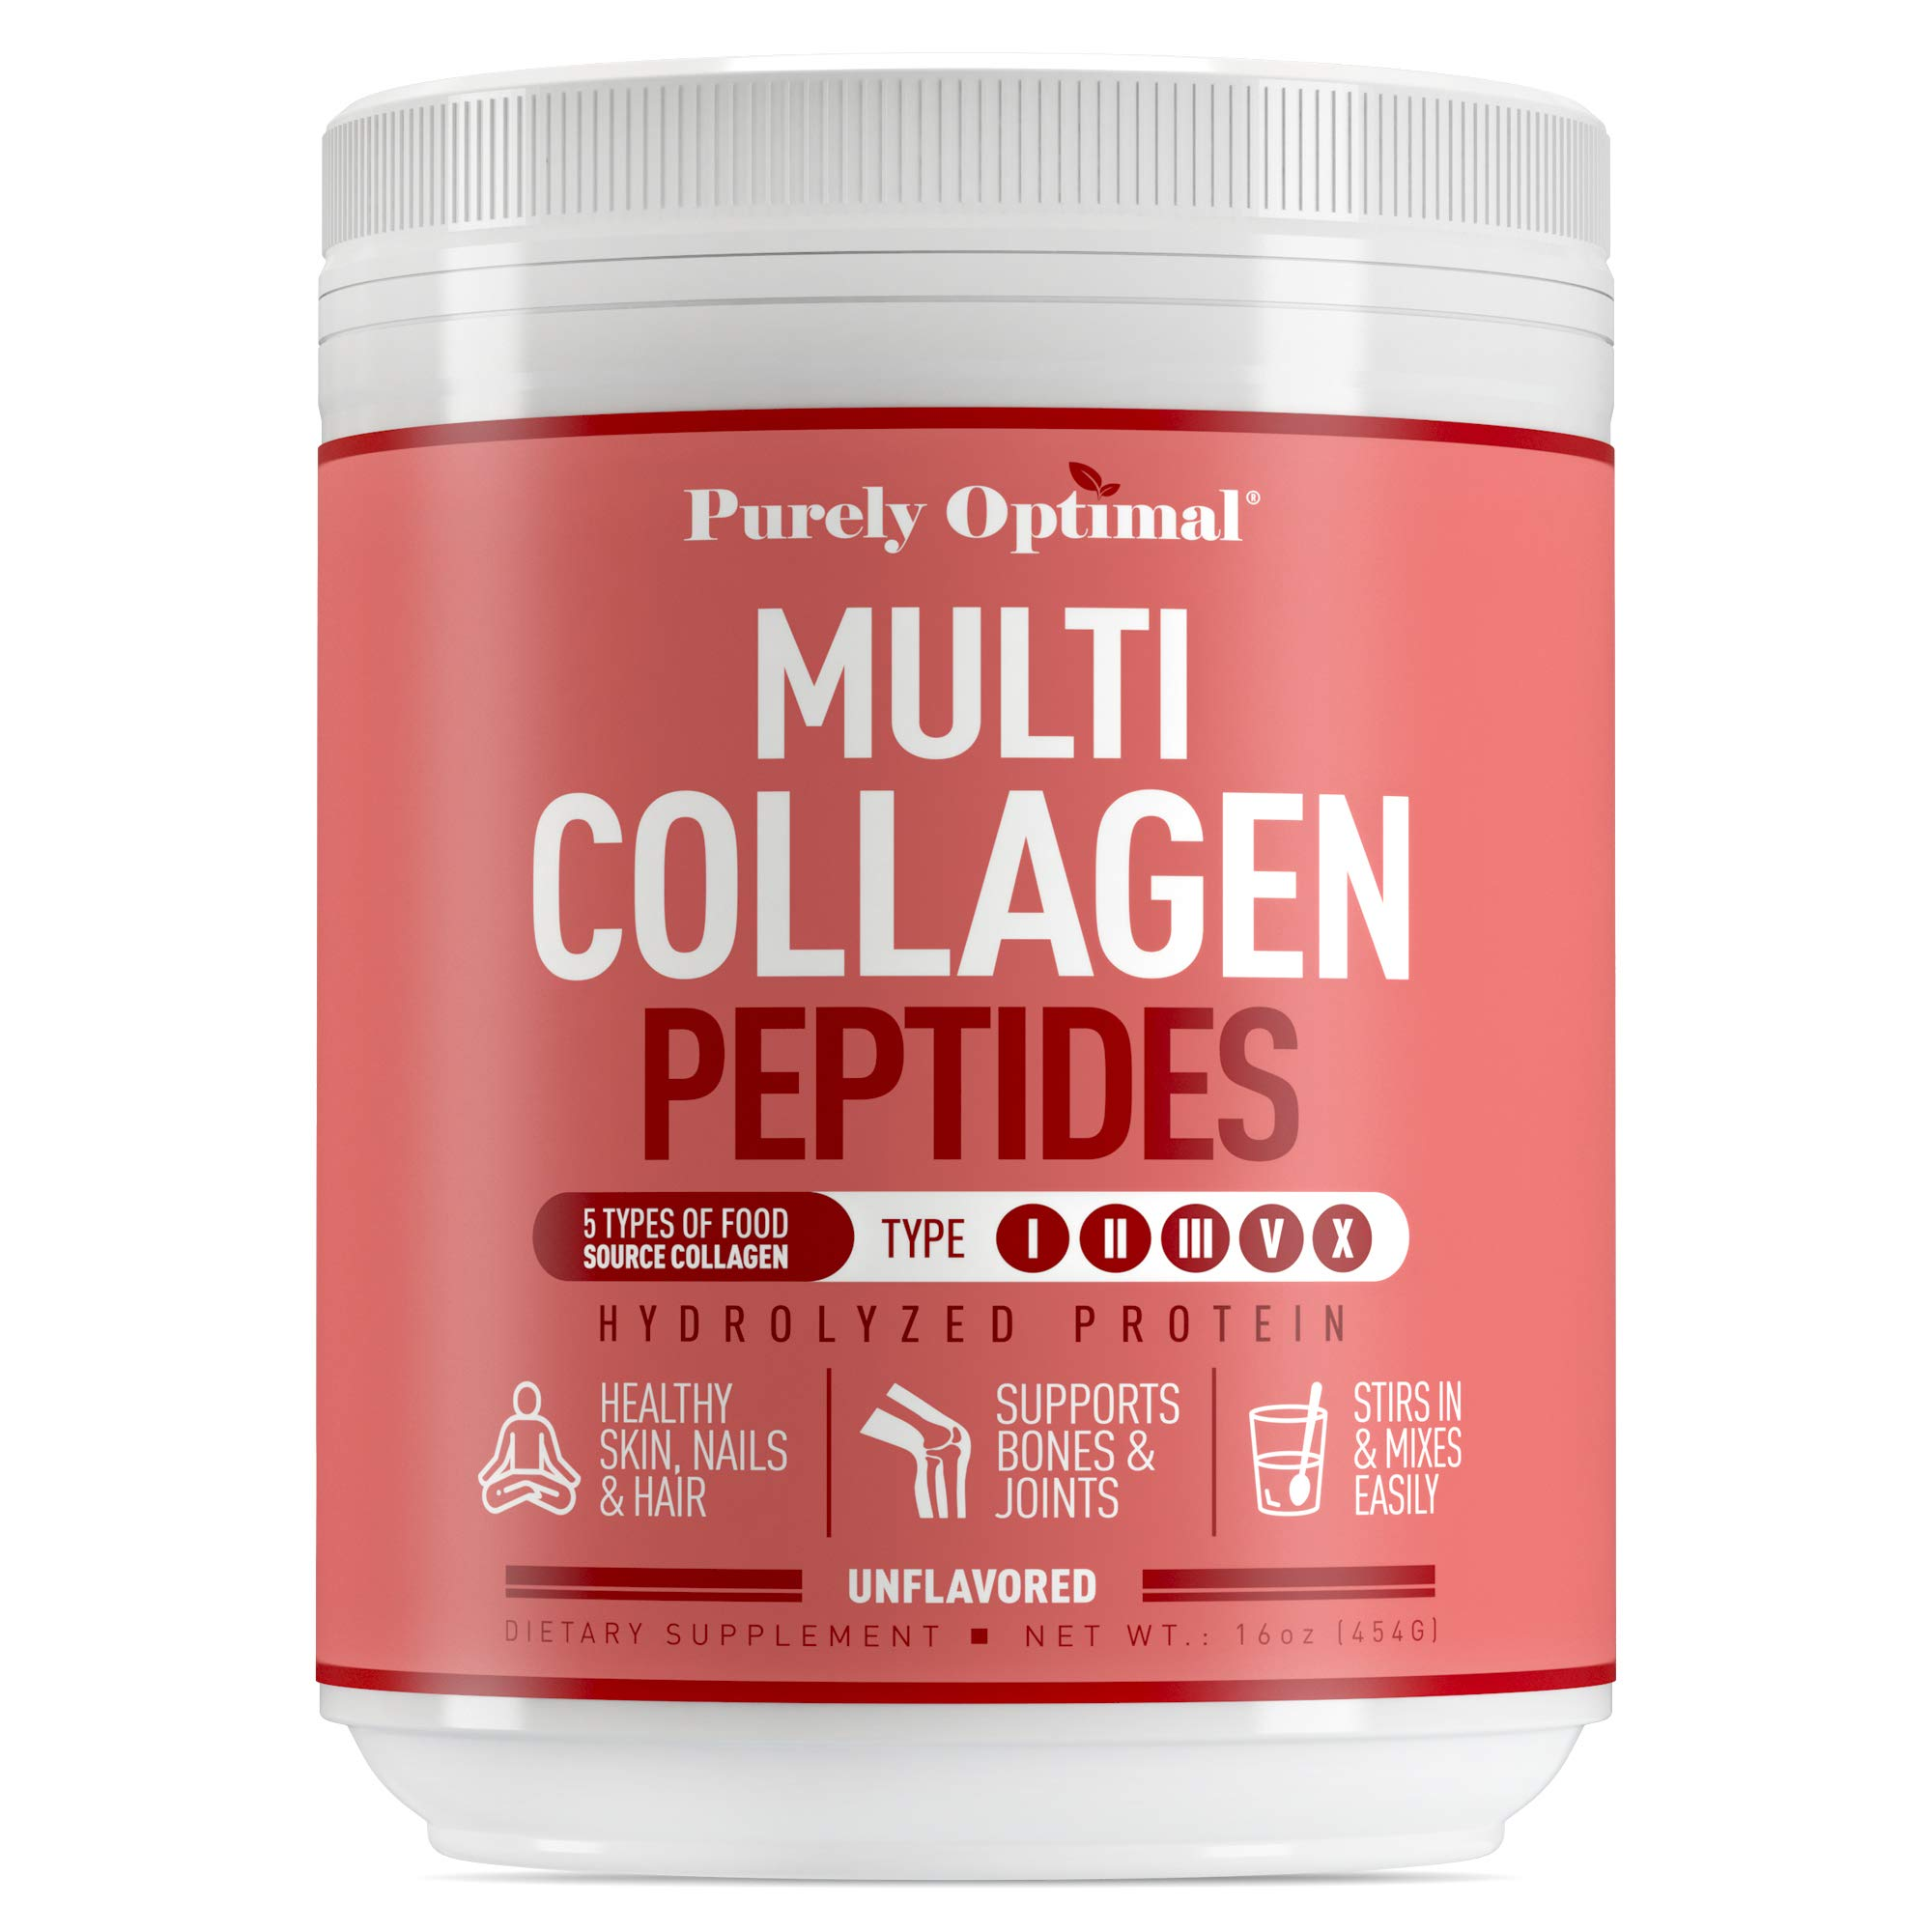 Premium Multi Collagen Powder - 5 Types of Hydrolyzed Collagen Peptides with Biotin, Hair Skin and Nails Vitamins, Bone & Joint Support - Keto-Friendly, Max Absorption, Easy Mix, Unflavored (16 oz)